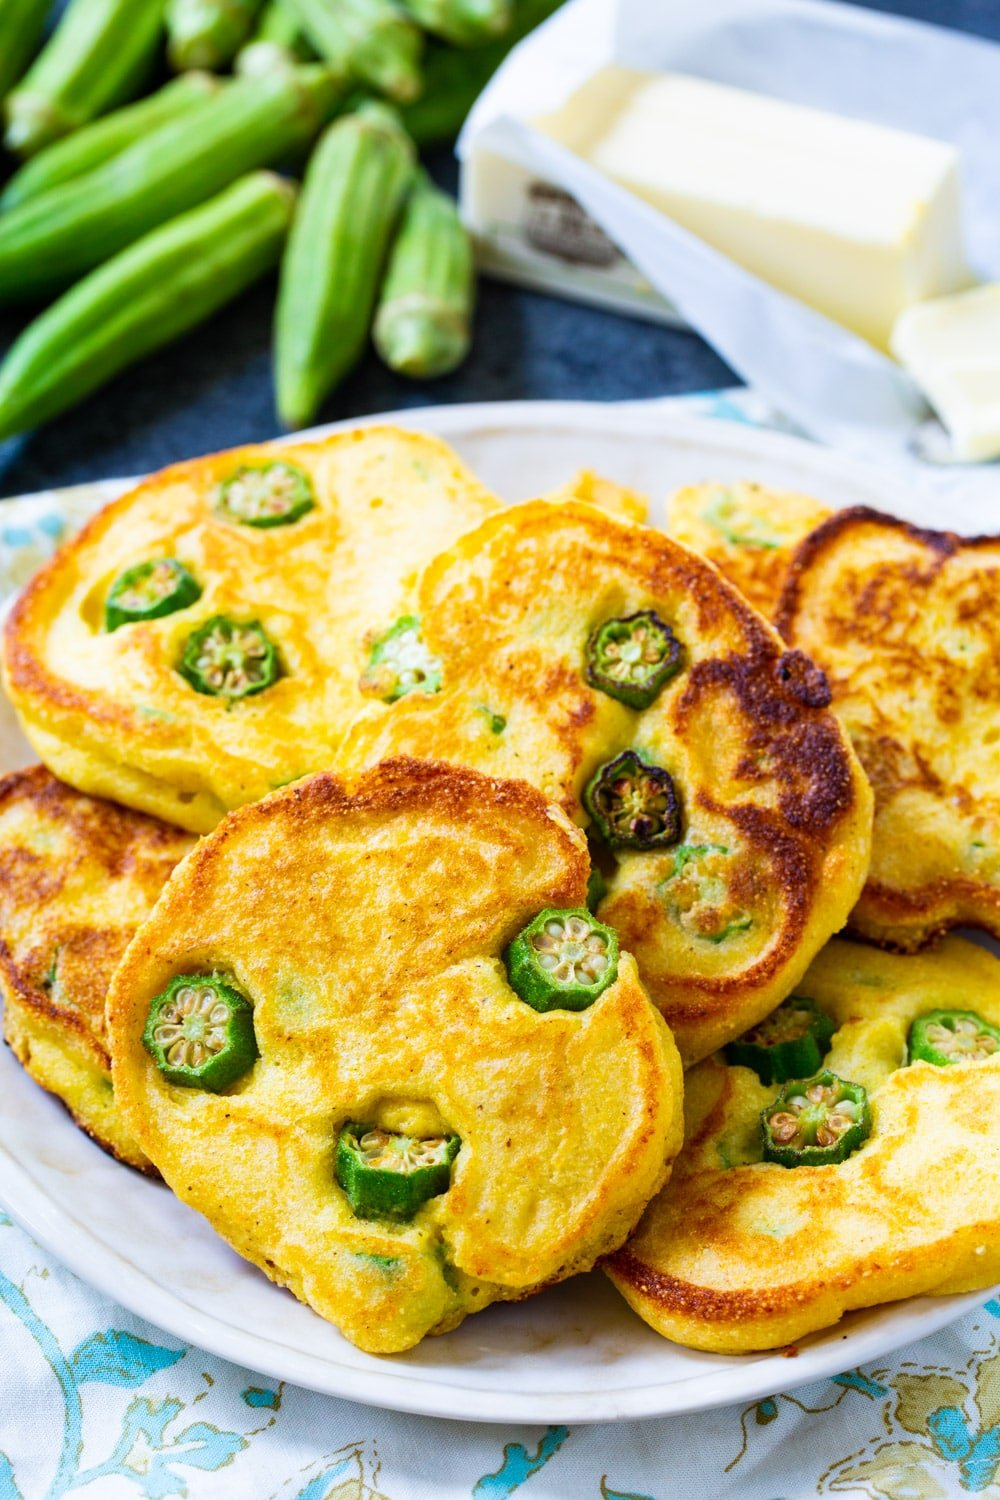 Hoecakes with okra on plate with okra in background.